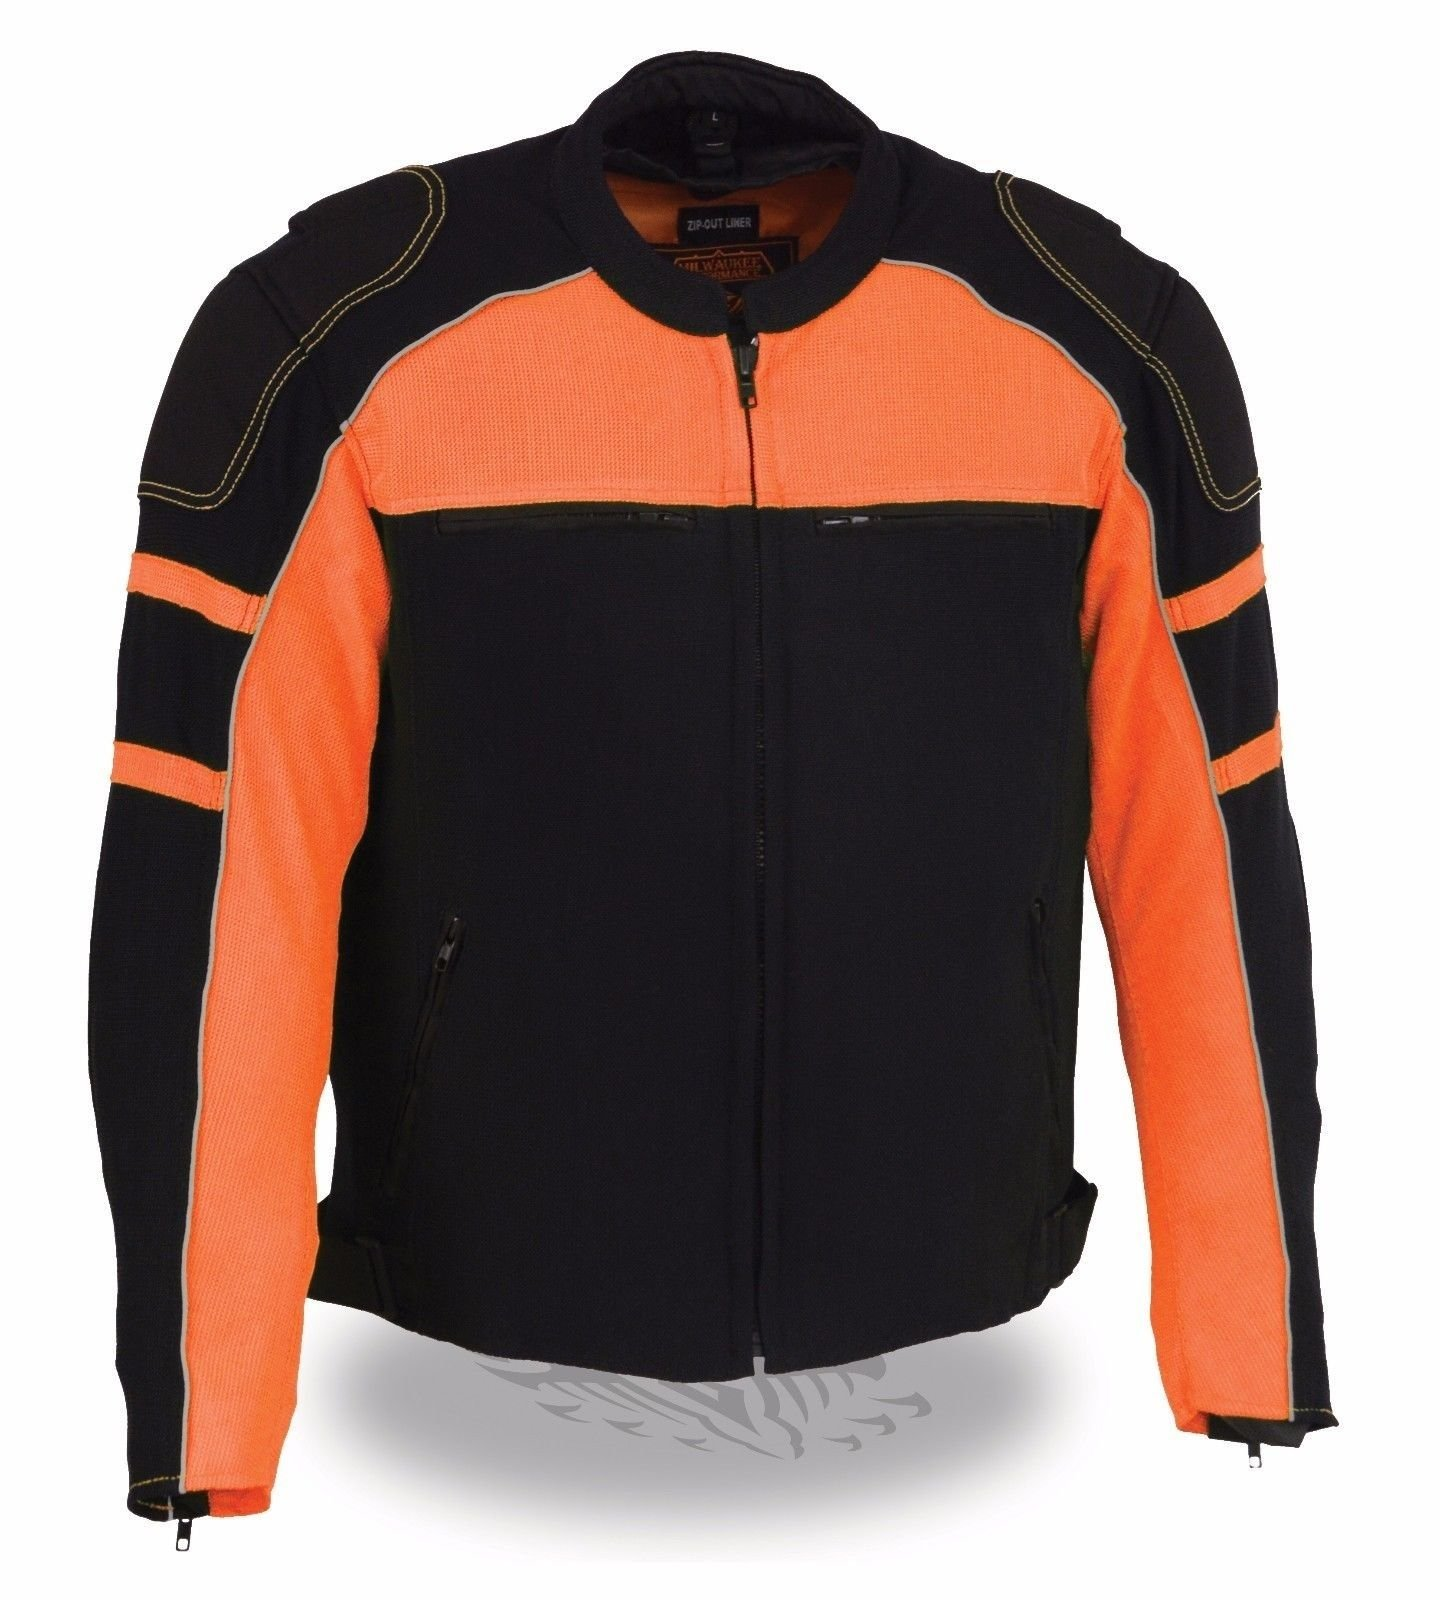 MEN'S MOTORCYCLE BLACK/ORANGE MESH RIDING JACKET W/ REMOVABLE RAIN JACKET LINER (4XL Regular)